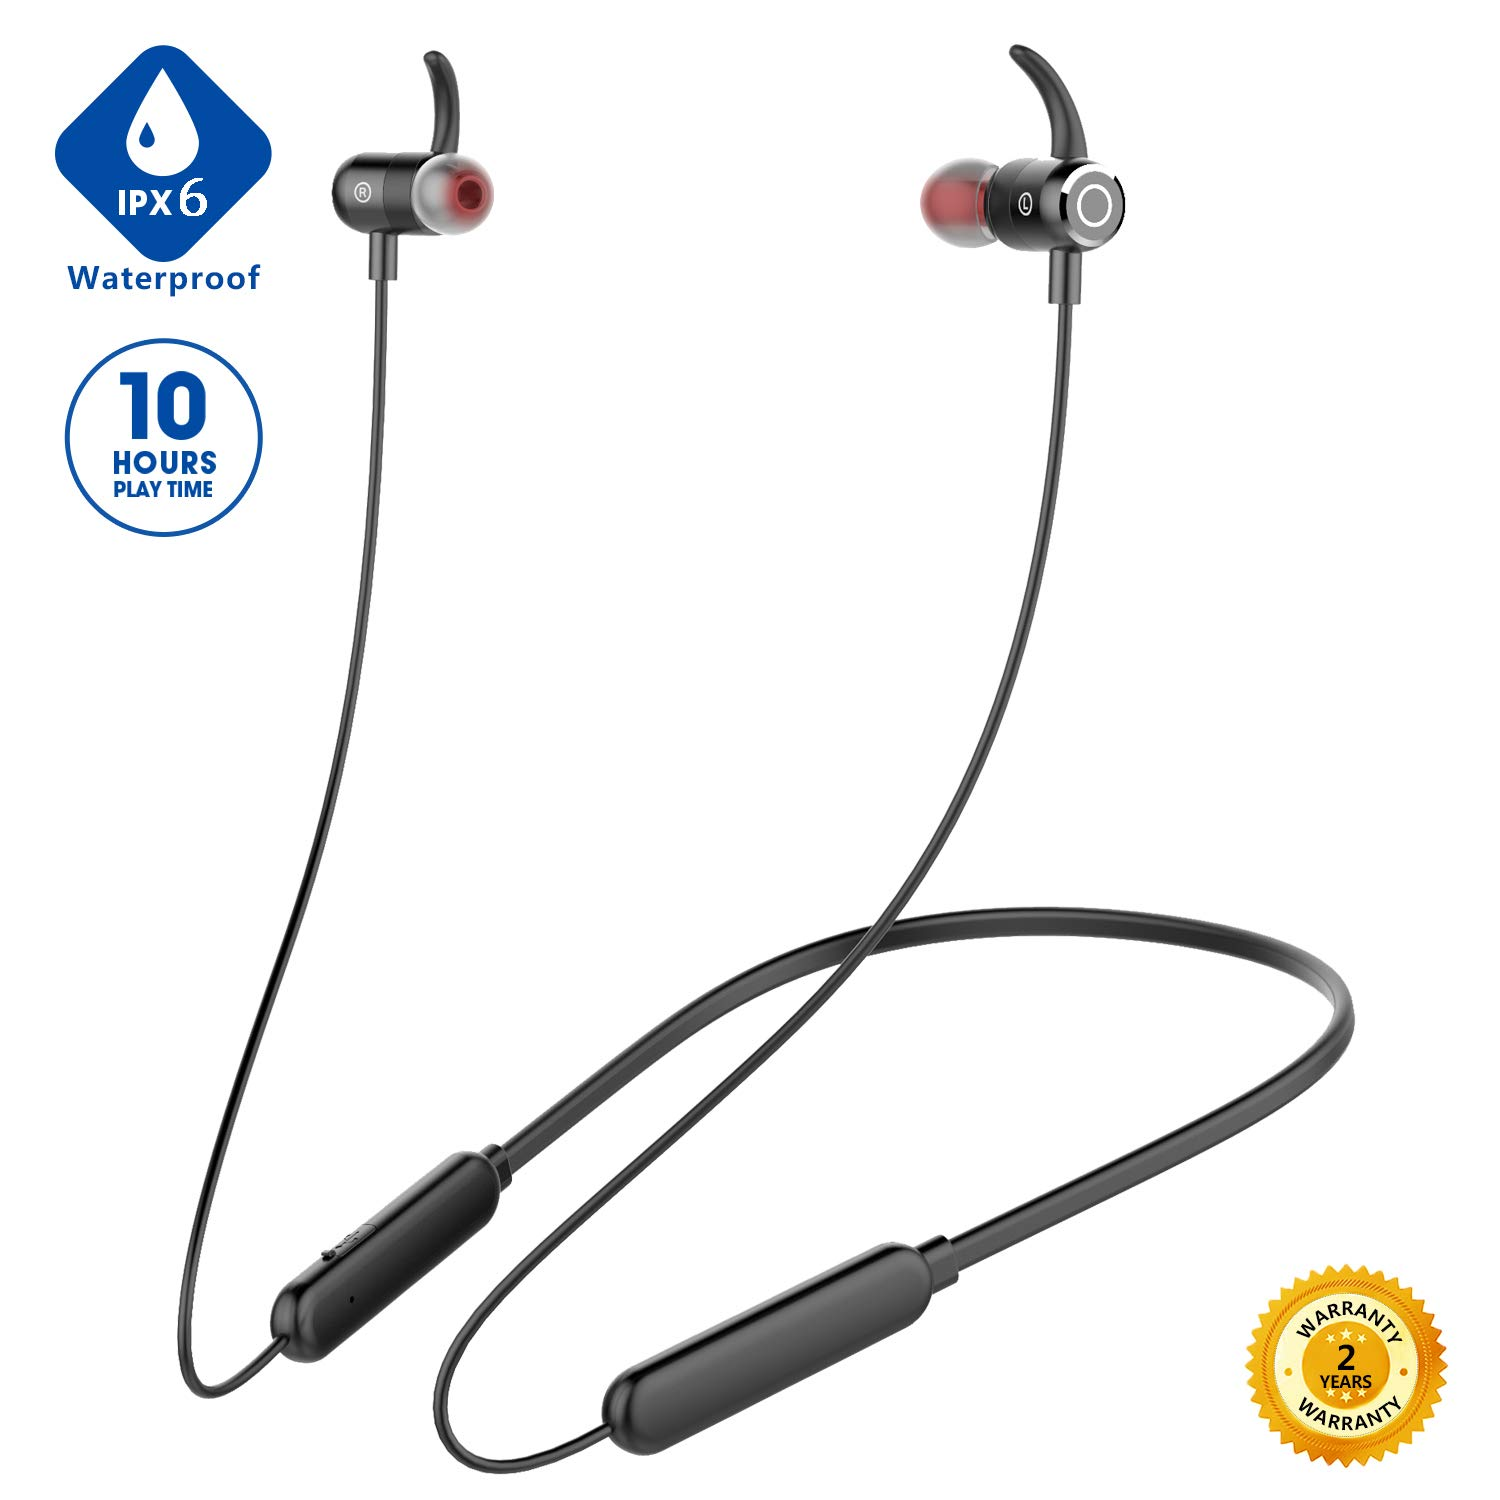 [Newest 2020]Bluetooth Headphones,Premium 10Hrs Playtime Neckband Wireless 5.0 Earbuds Sport Magnetic Earphones w/Mic,Waterproof IPX6,Deep Bass Earbuds for Workout Running Gym,Noise Cancelling (Black)